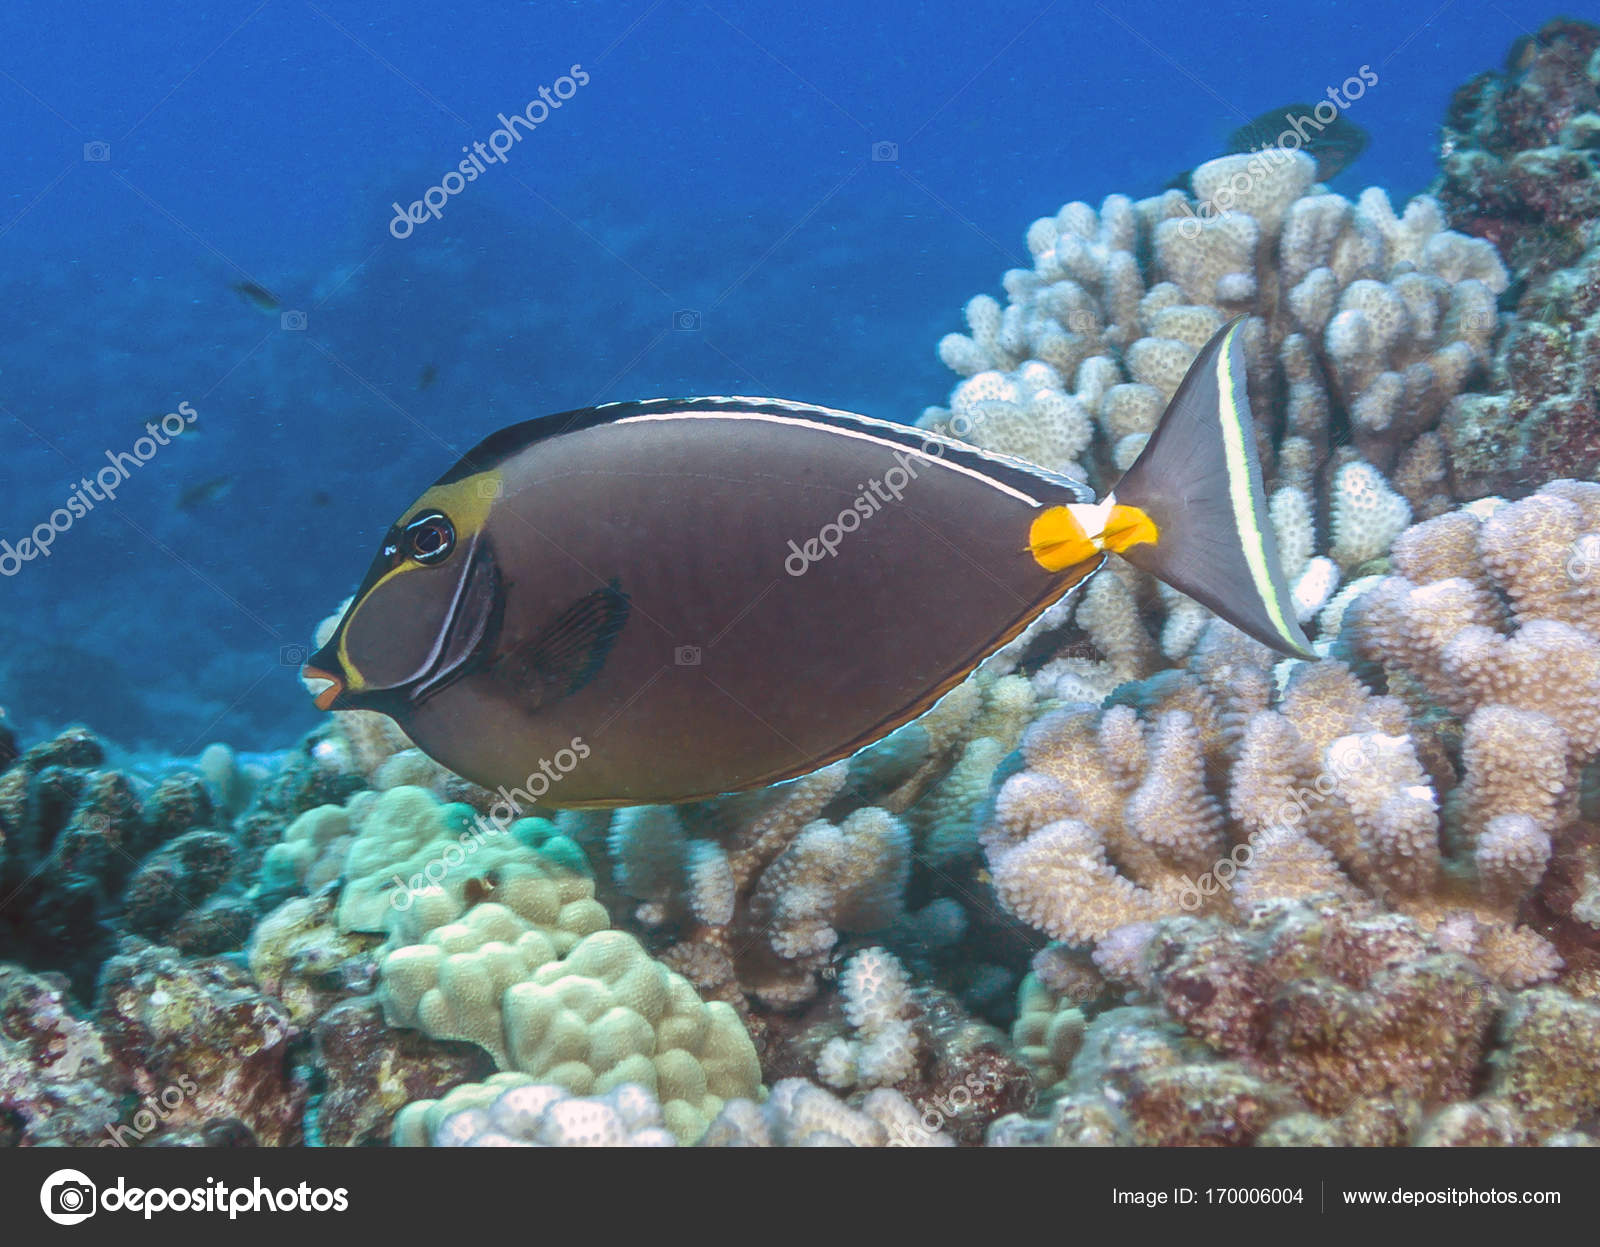 cd9635ecb Recifes de corais unicornfish — Stock Photo © johnanderson  170006004